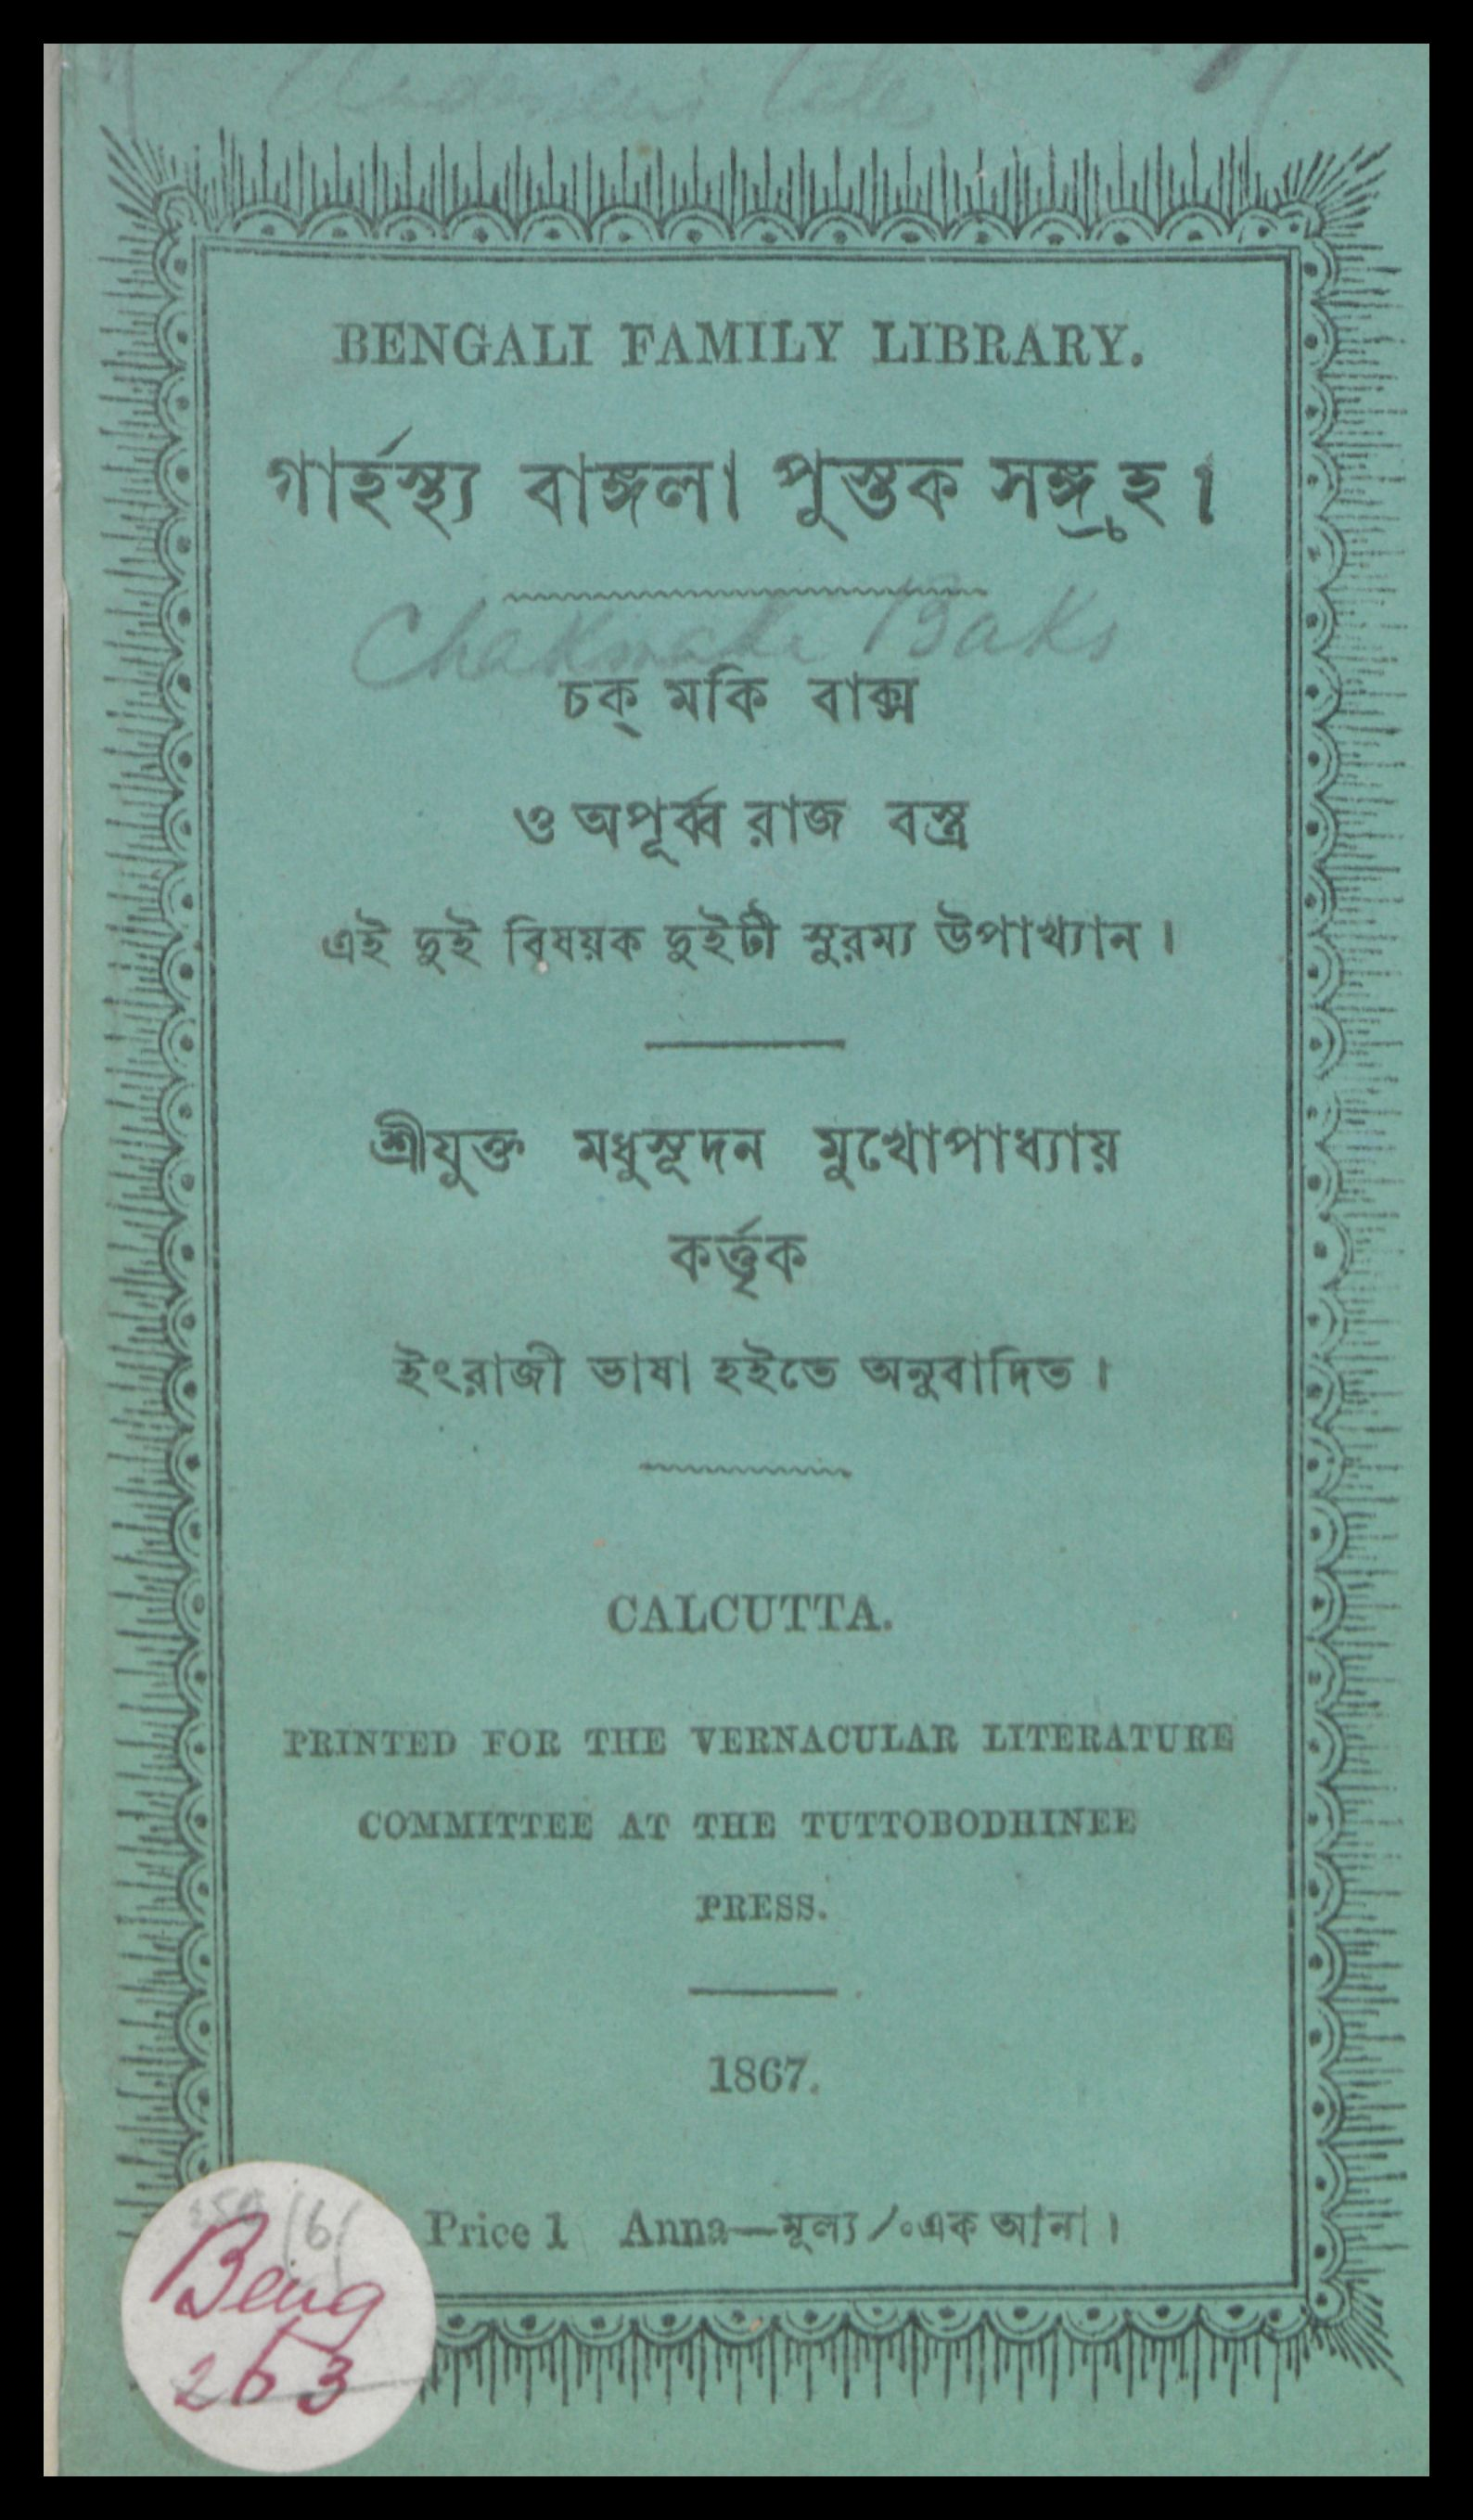 Title page from Cakamaki baksa o apurbba rajbastra